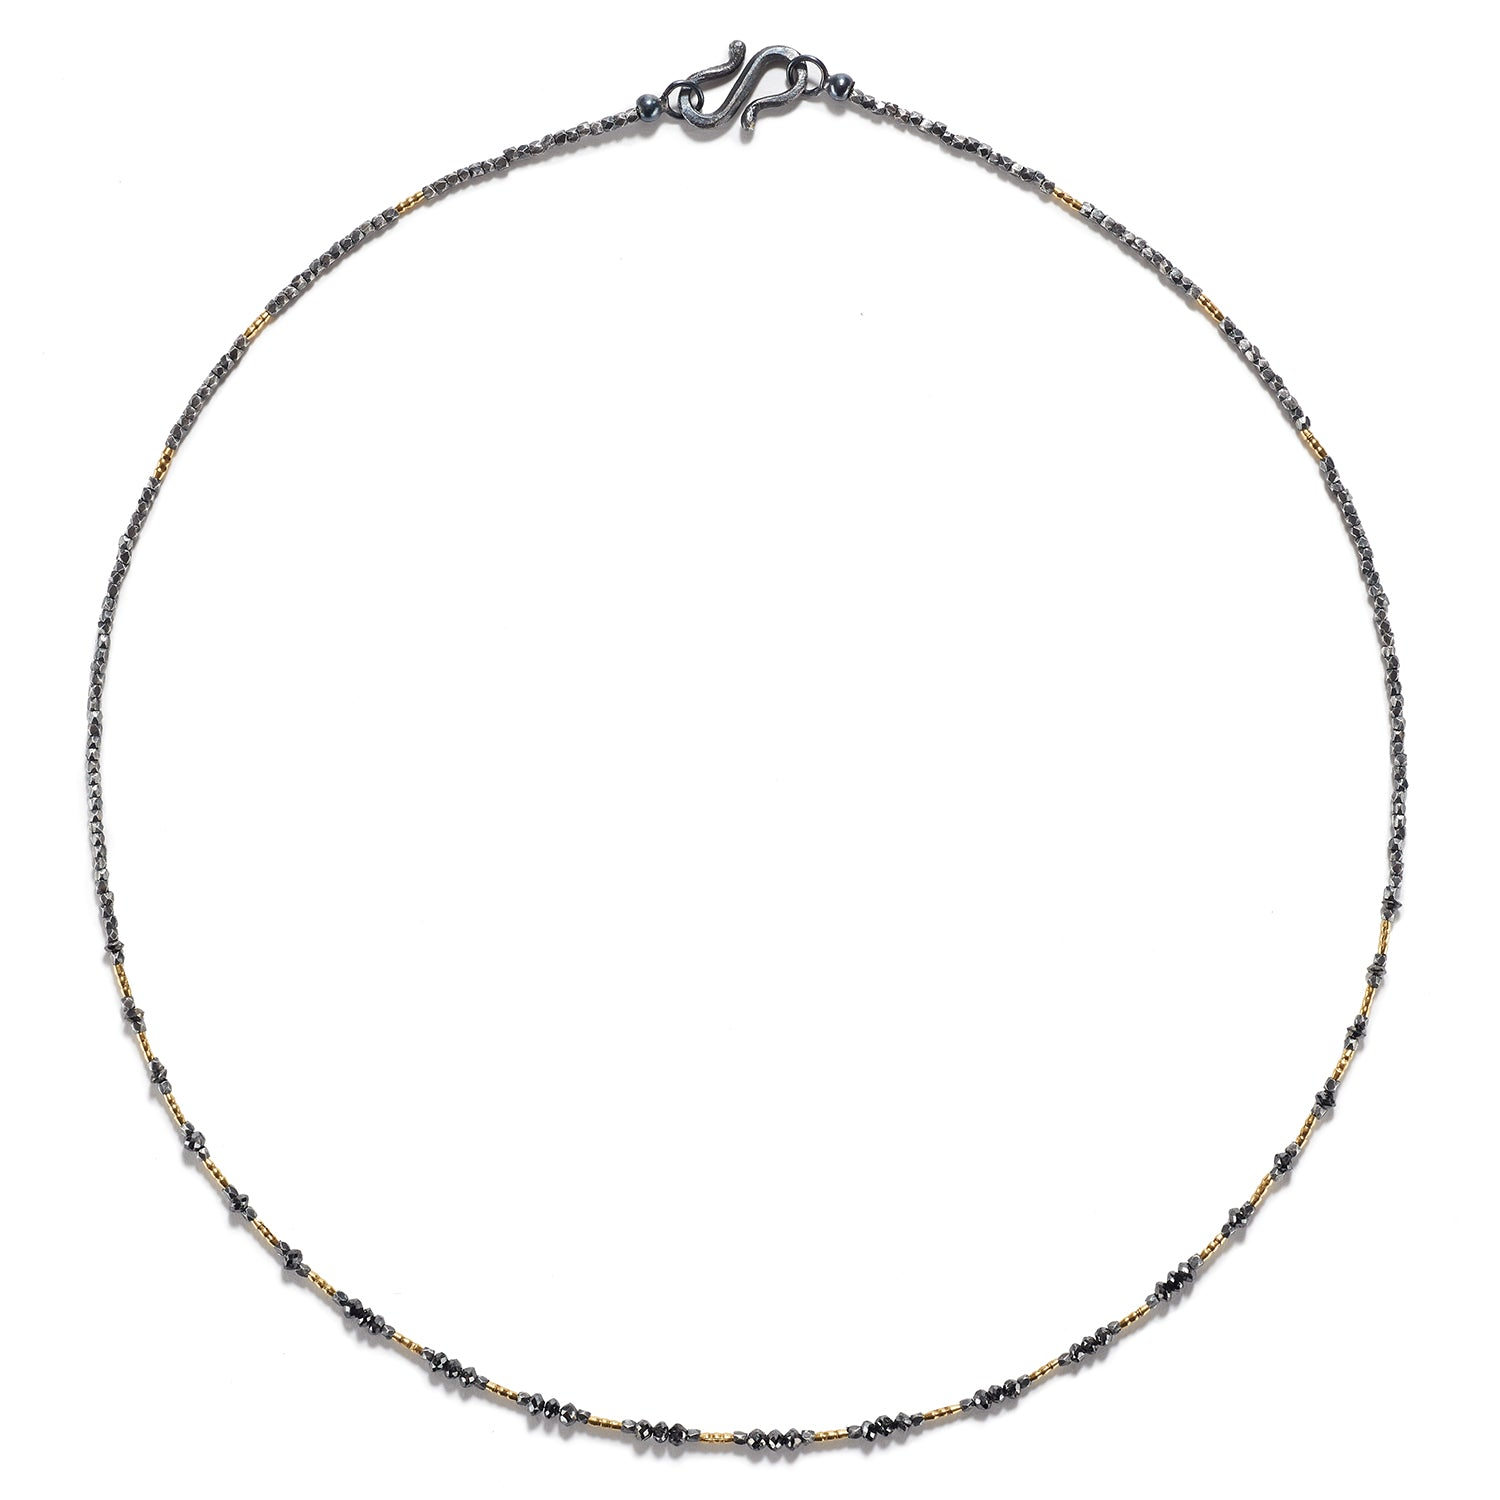 Burma Gold, Black Diamonds & Silver Necklace